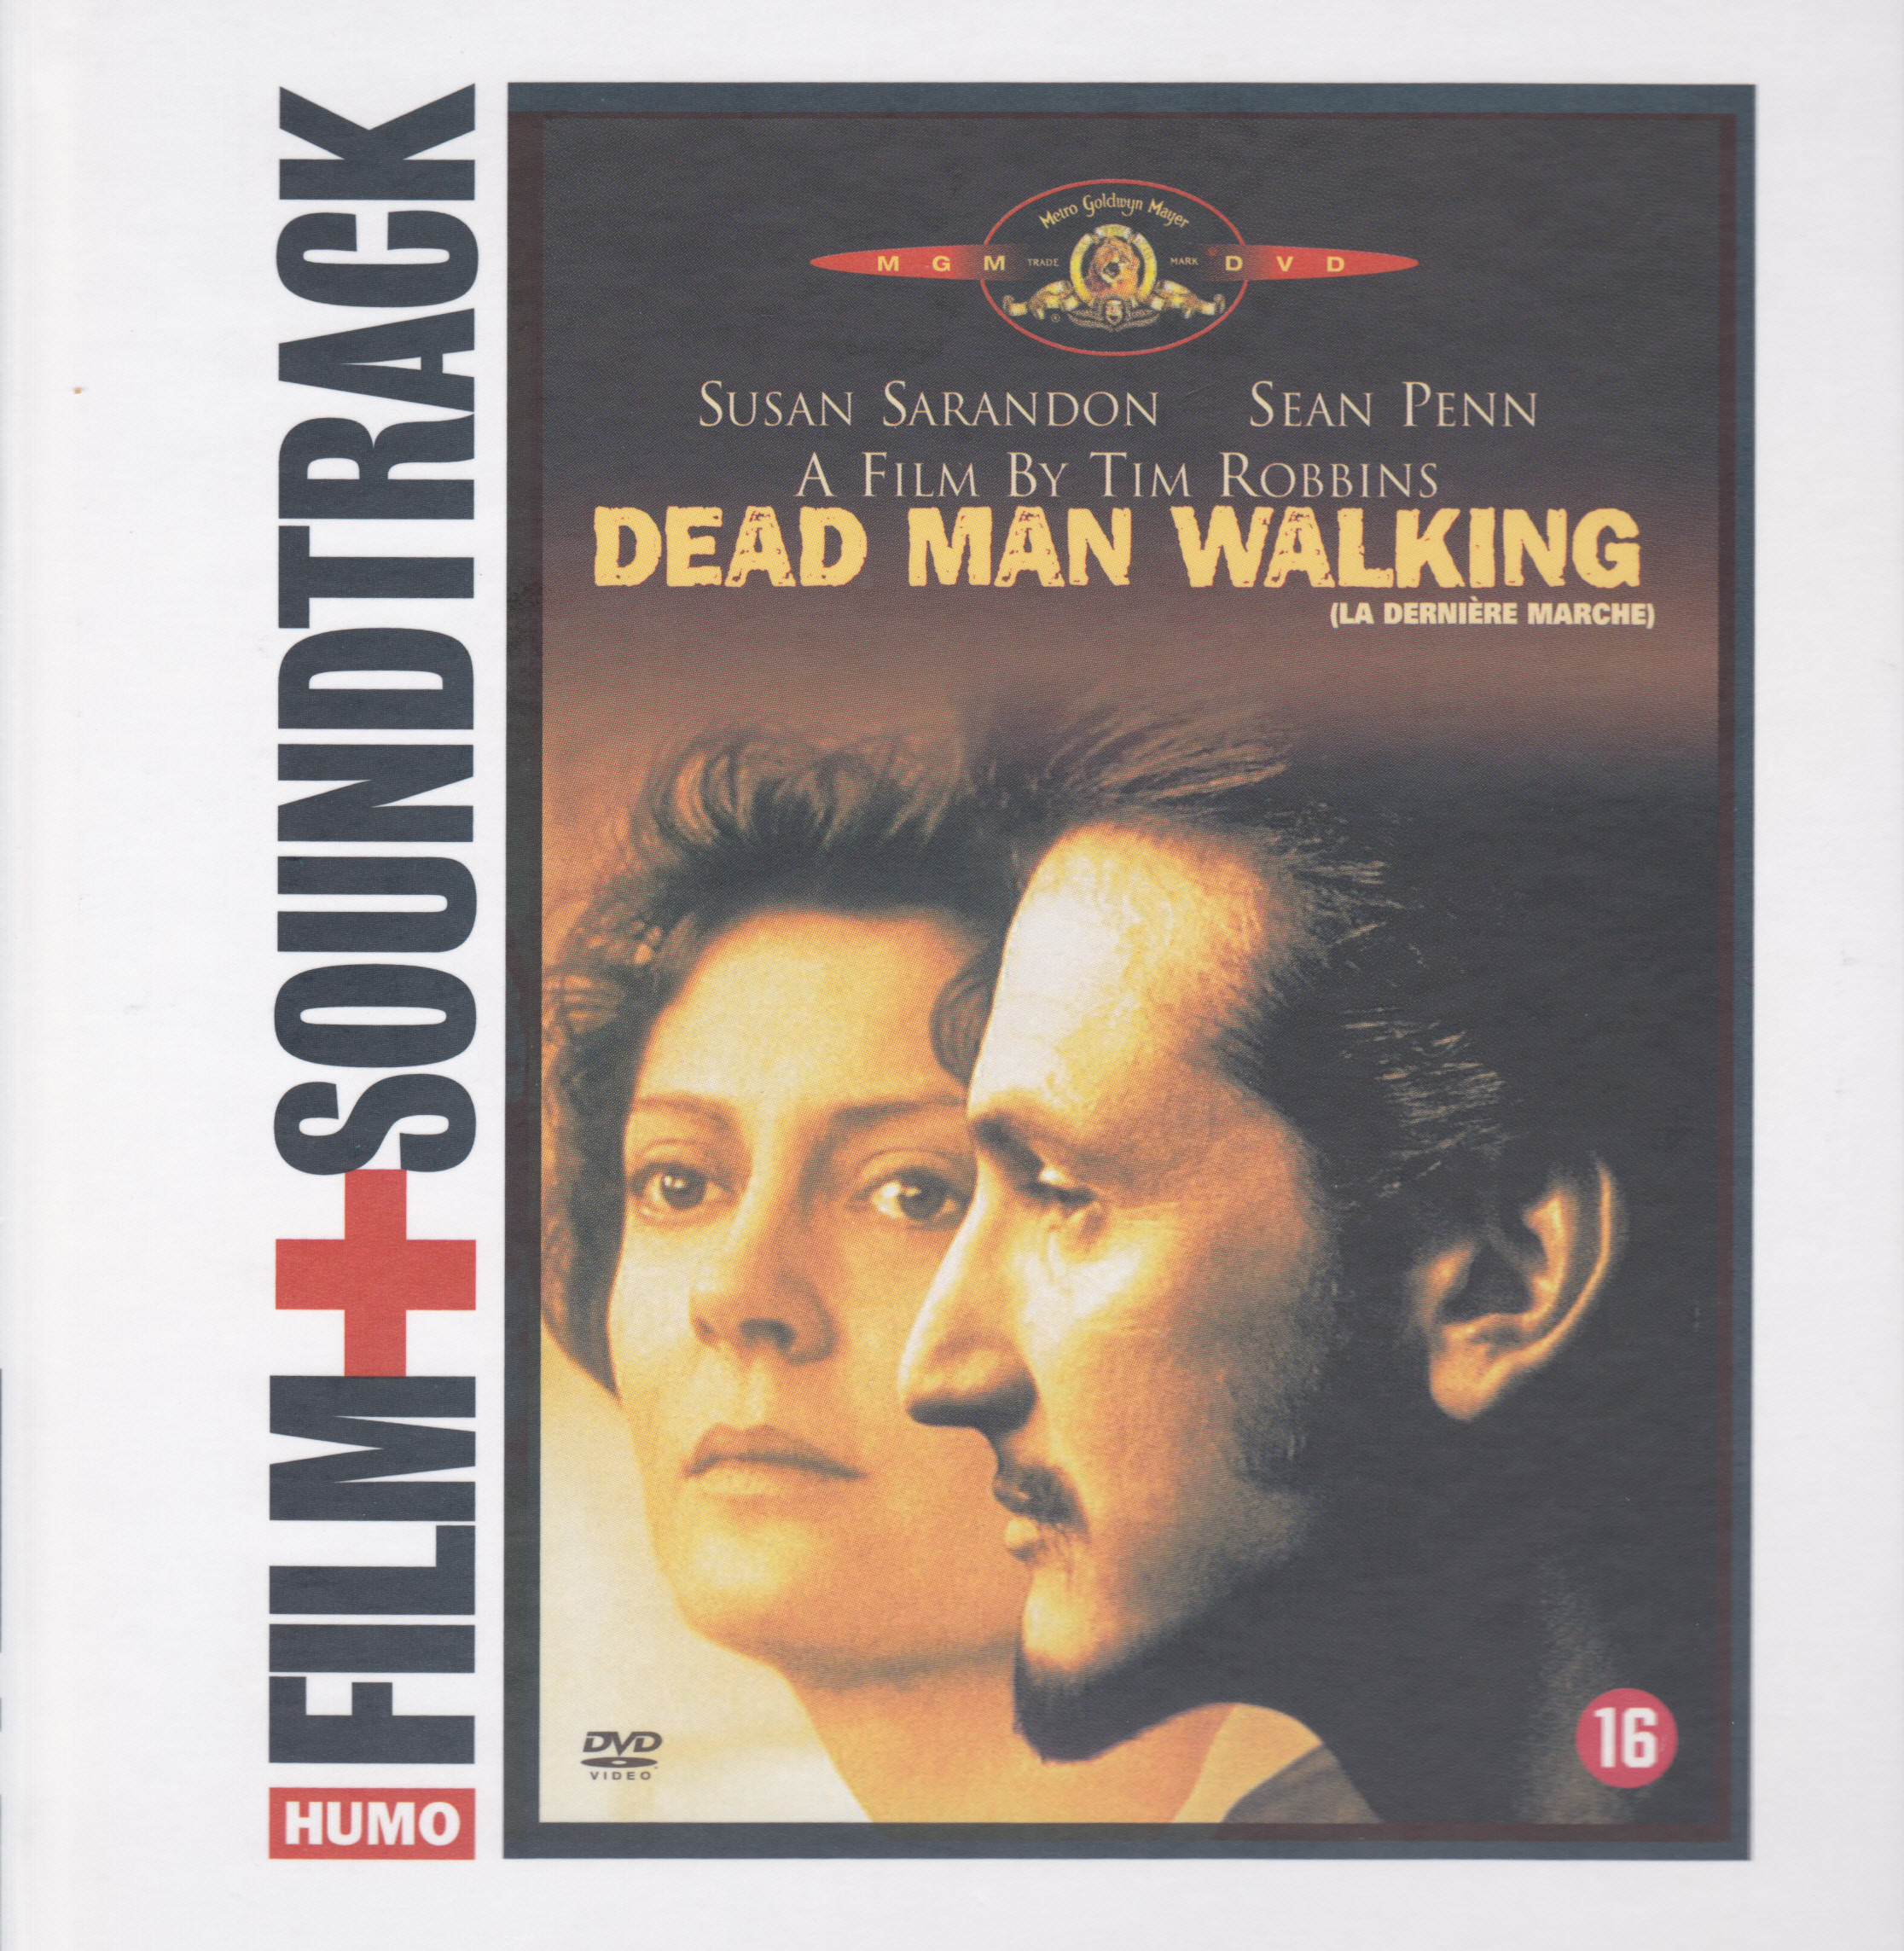 dead man walking essay topics Dead man walking is a 1993 nonfiction book written by sister helen prejean, a catholic nun from new orleans the book is a memoir of prejean's experiences as the spiritual advisor to two condemned death row inmates at the louisiana state penitentiary in the 1980s.